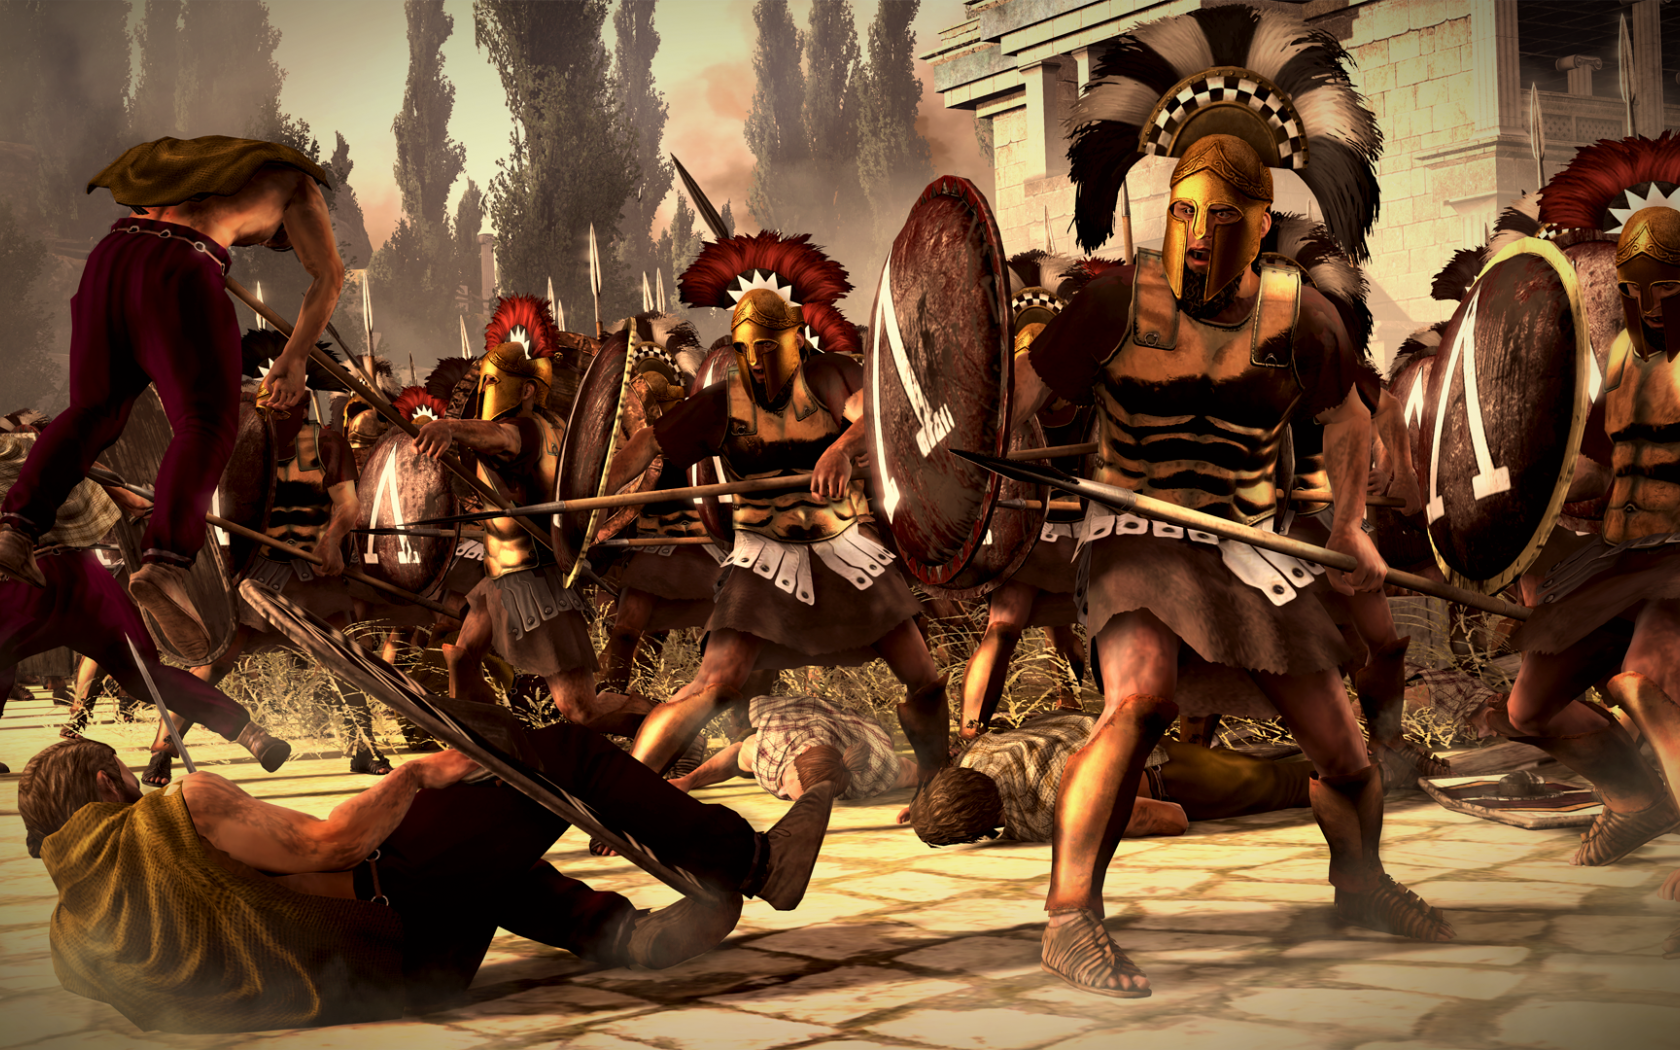 Free Download Total War Rome Ii Wallpaper 4865 1920x1080 For